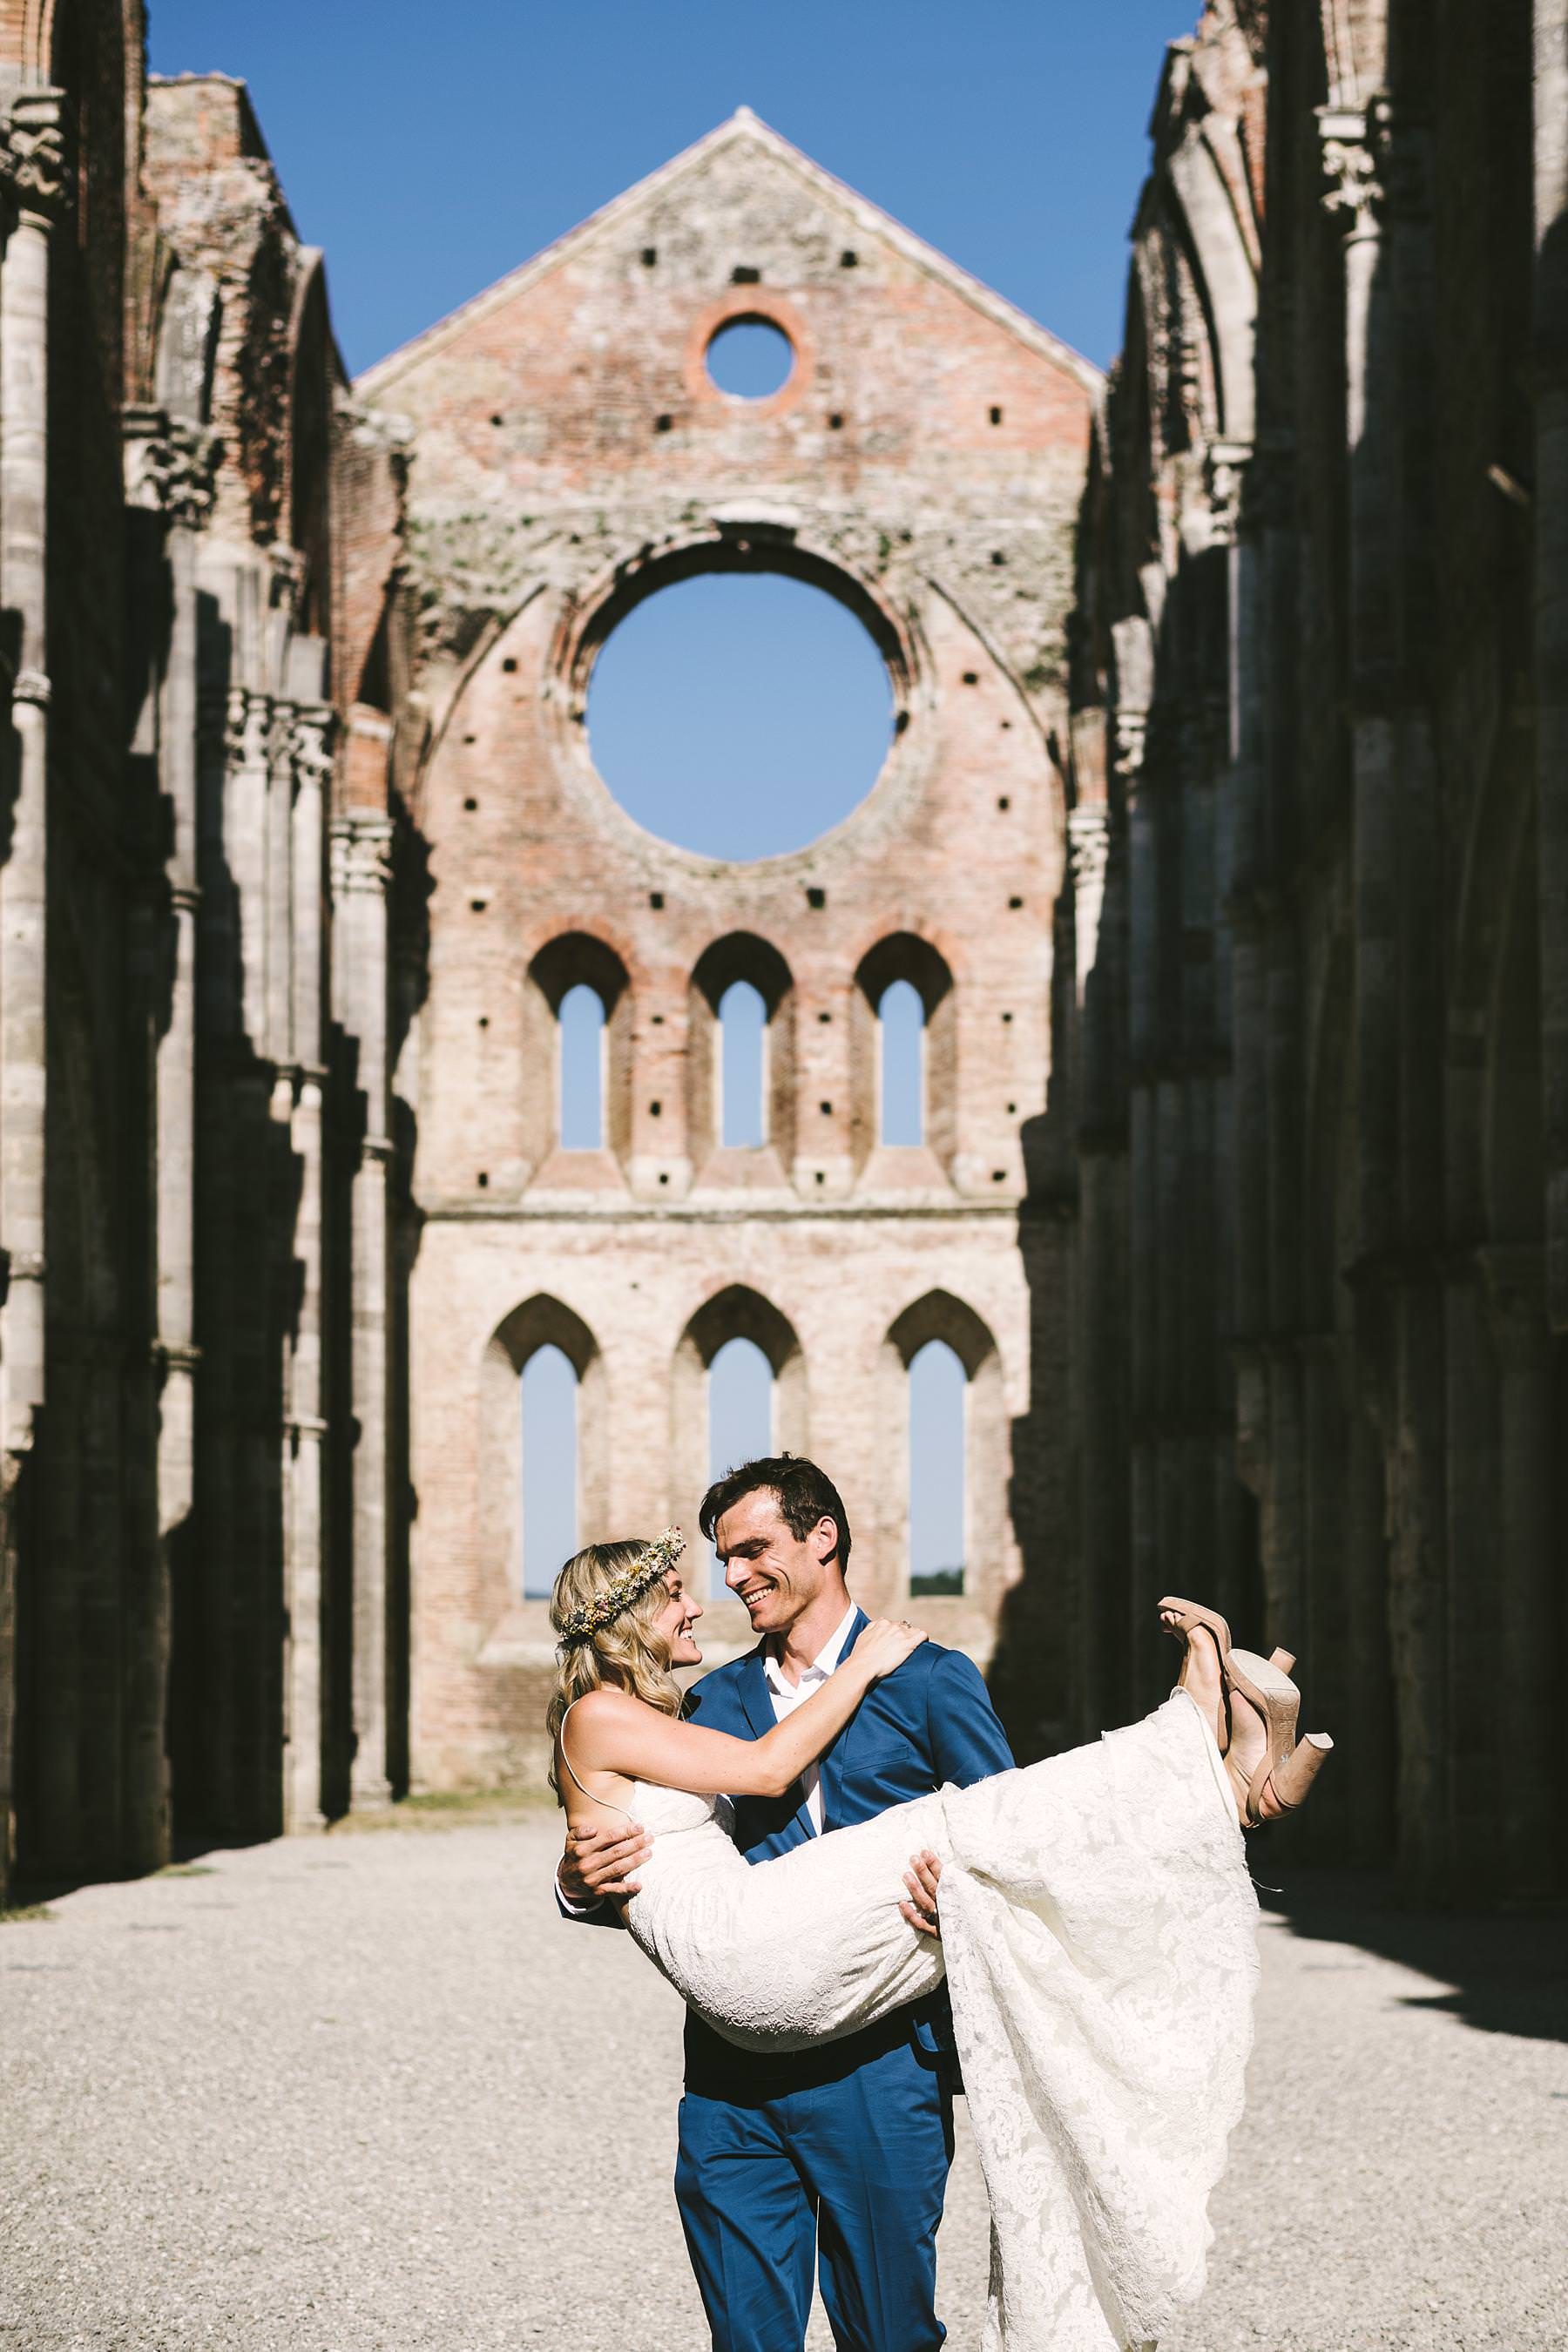 Unforgettable bride and groom wedding portrait at the Roofless Abbey of San Galgano full of colours, light, architecture and love gestures. Intimate destination Italian civil wedding in Tuscany